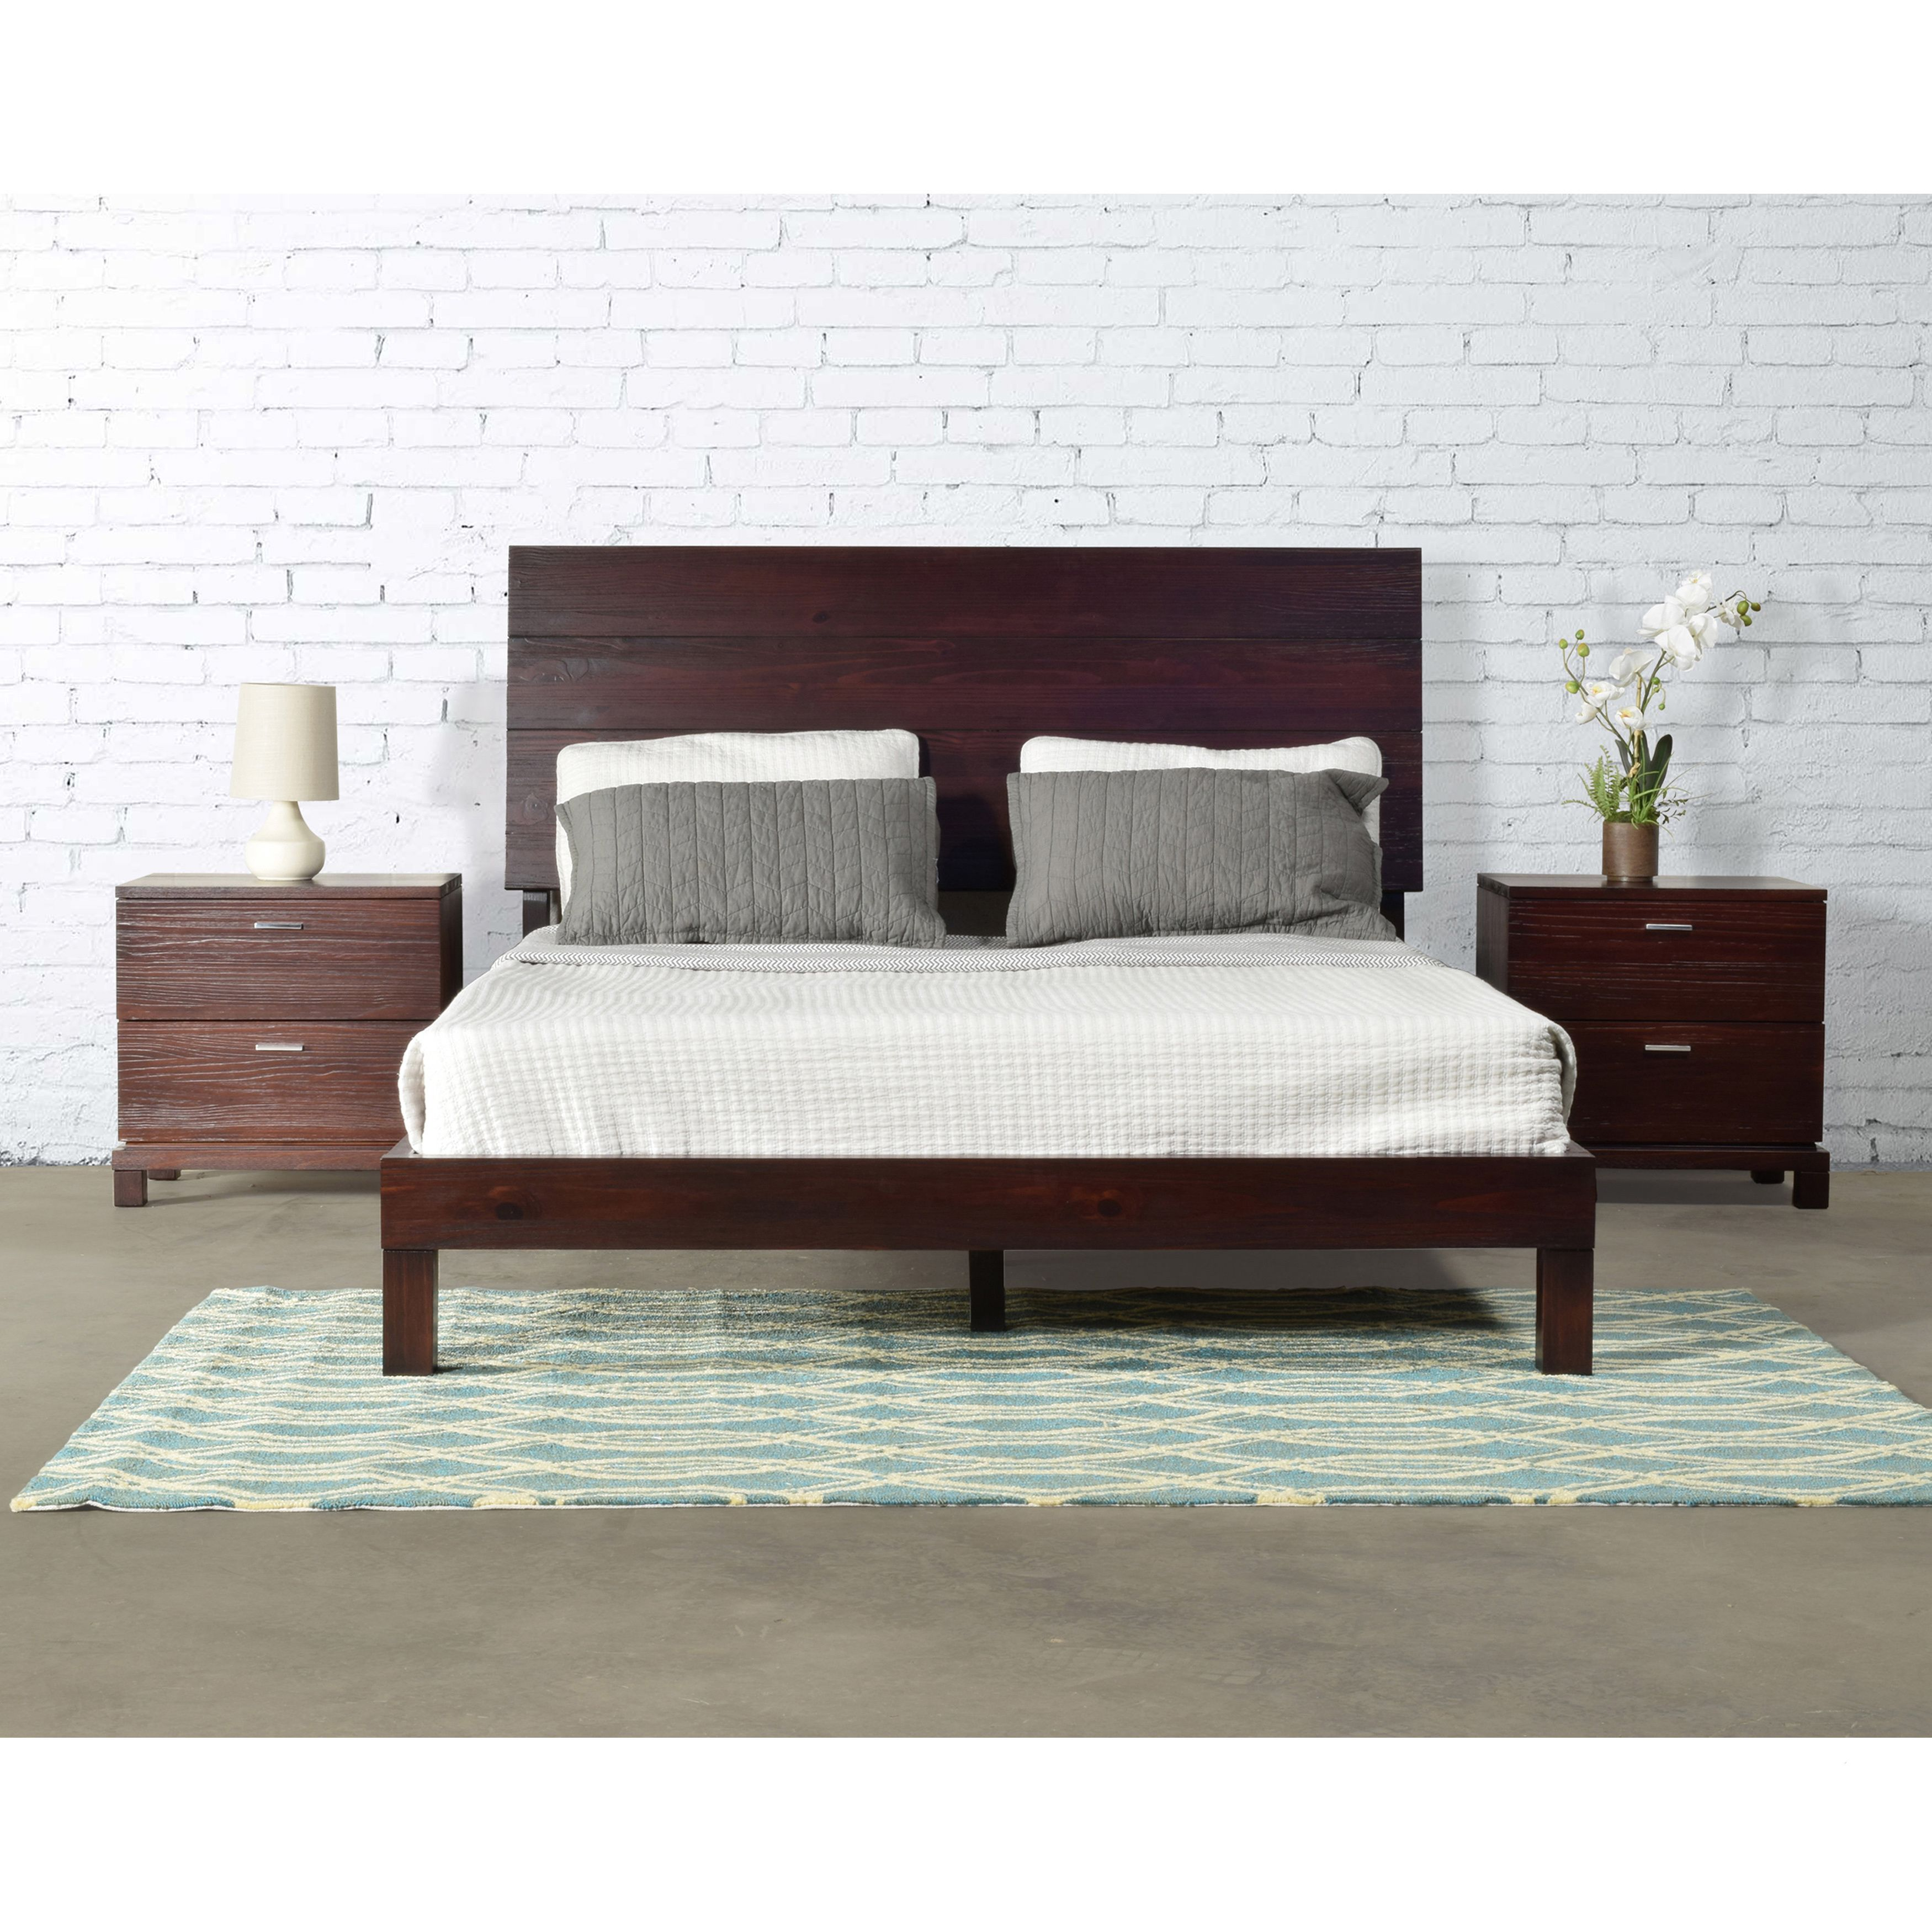 Online Shopping Bedding Furniture Electronics Jewelry Clothing More Furniture Bed Headboards For Beds